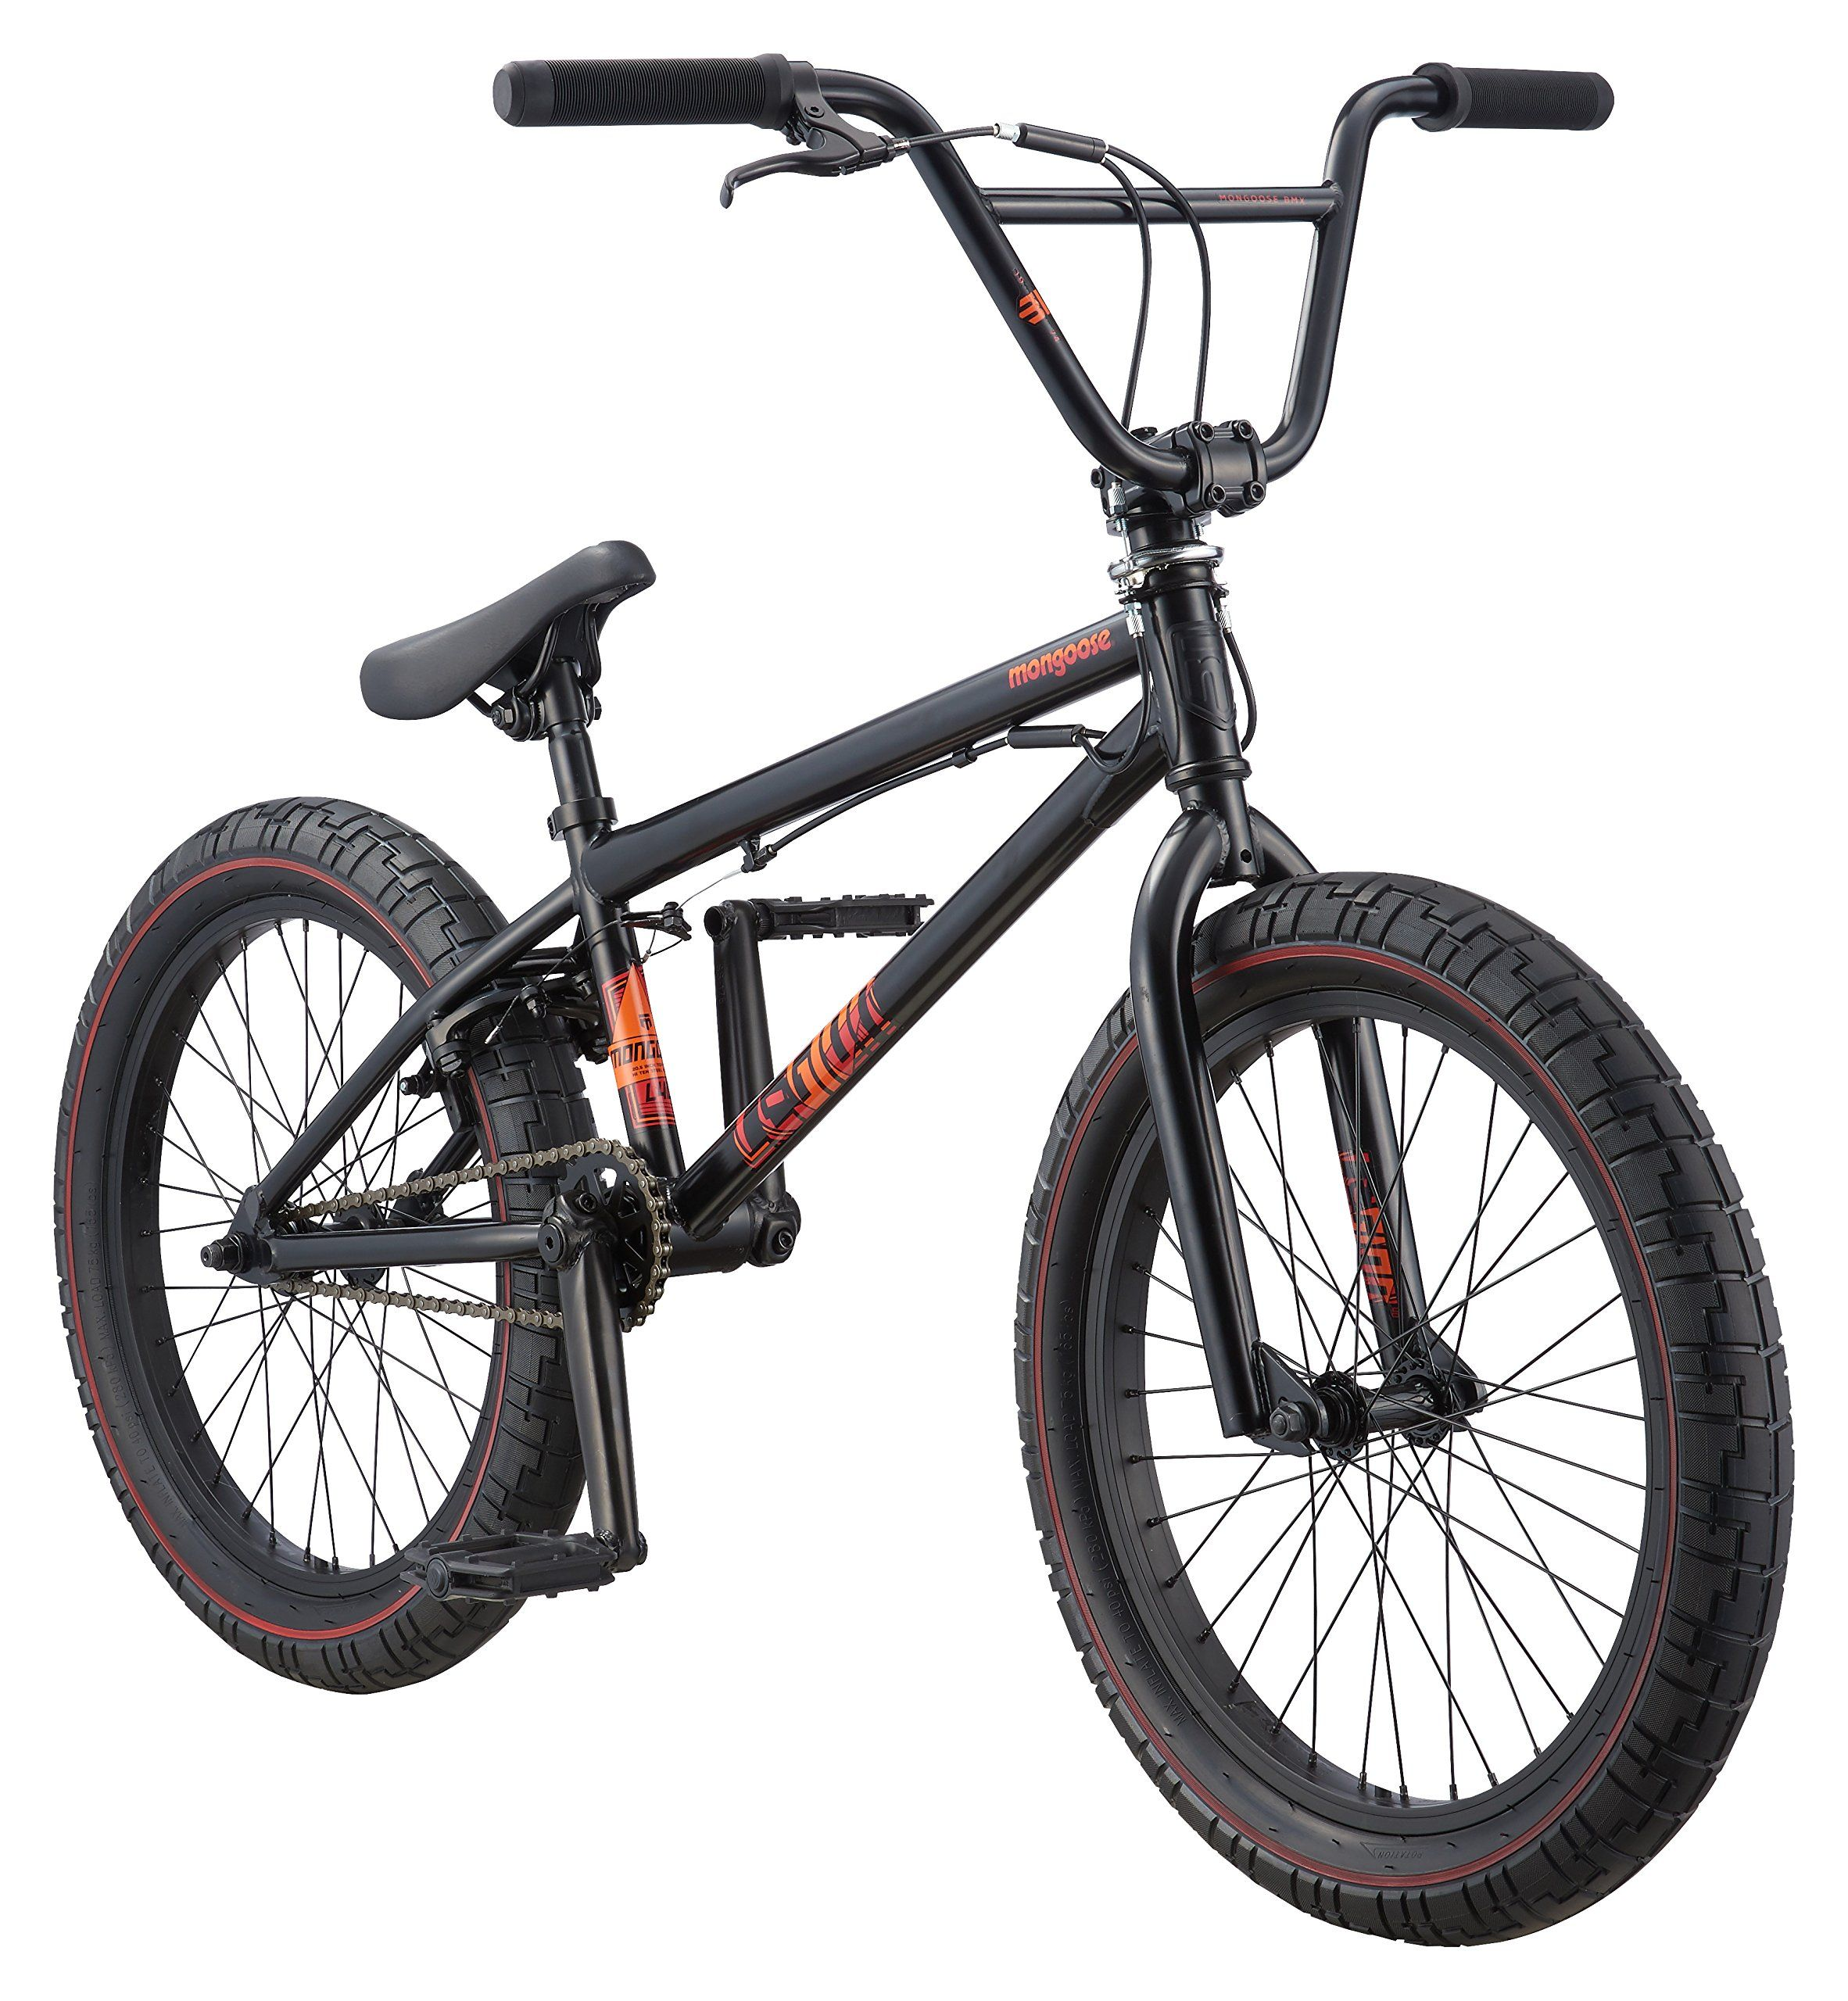 Mongoose Legion L40 20 Wheel Freestyle Bike Black One Size Mongoose Hi Ten Bmx Frame And Fork Is Comfortable And Fits Modern Bmx Geo Bmx Bikes Best Bmx Bmx